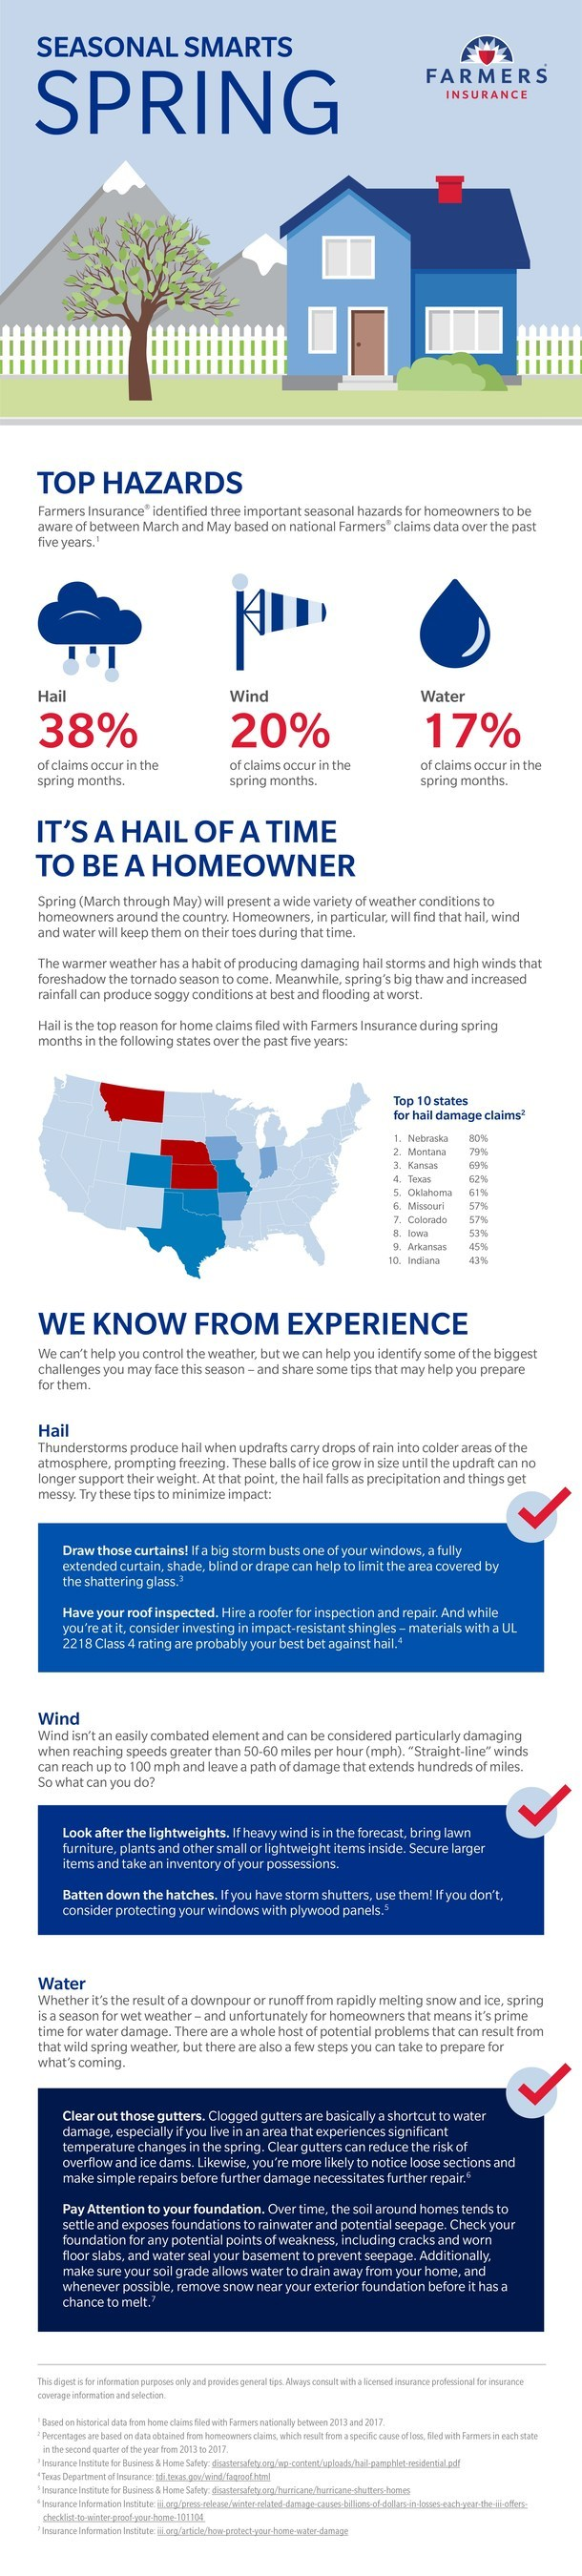 The Farmers Insurance Seasonal Smarts Digest: Spring 2018 edition notes that hail, wind and water are major insurance claim factors for homeowners in spring months.